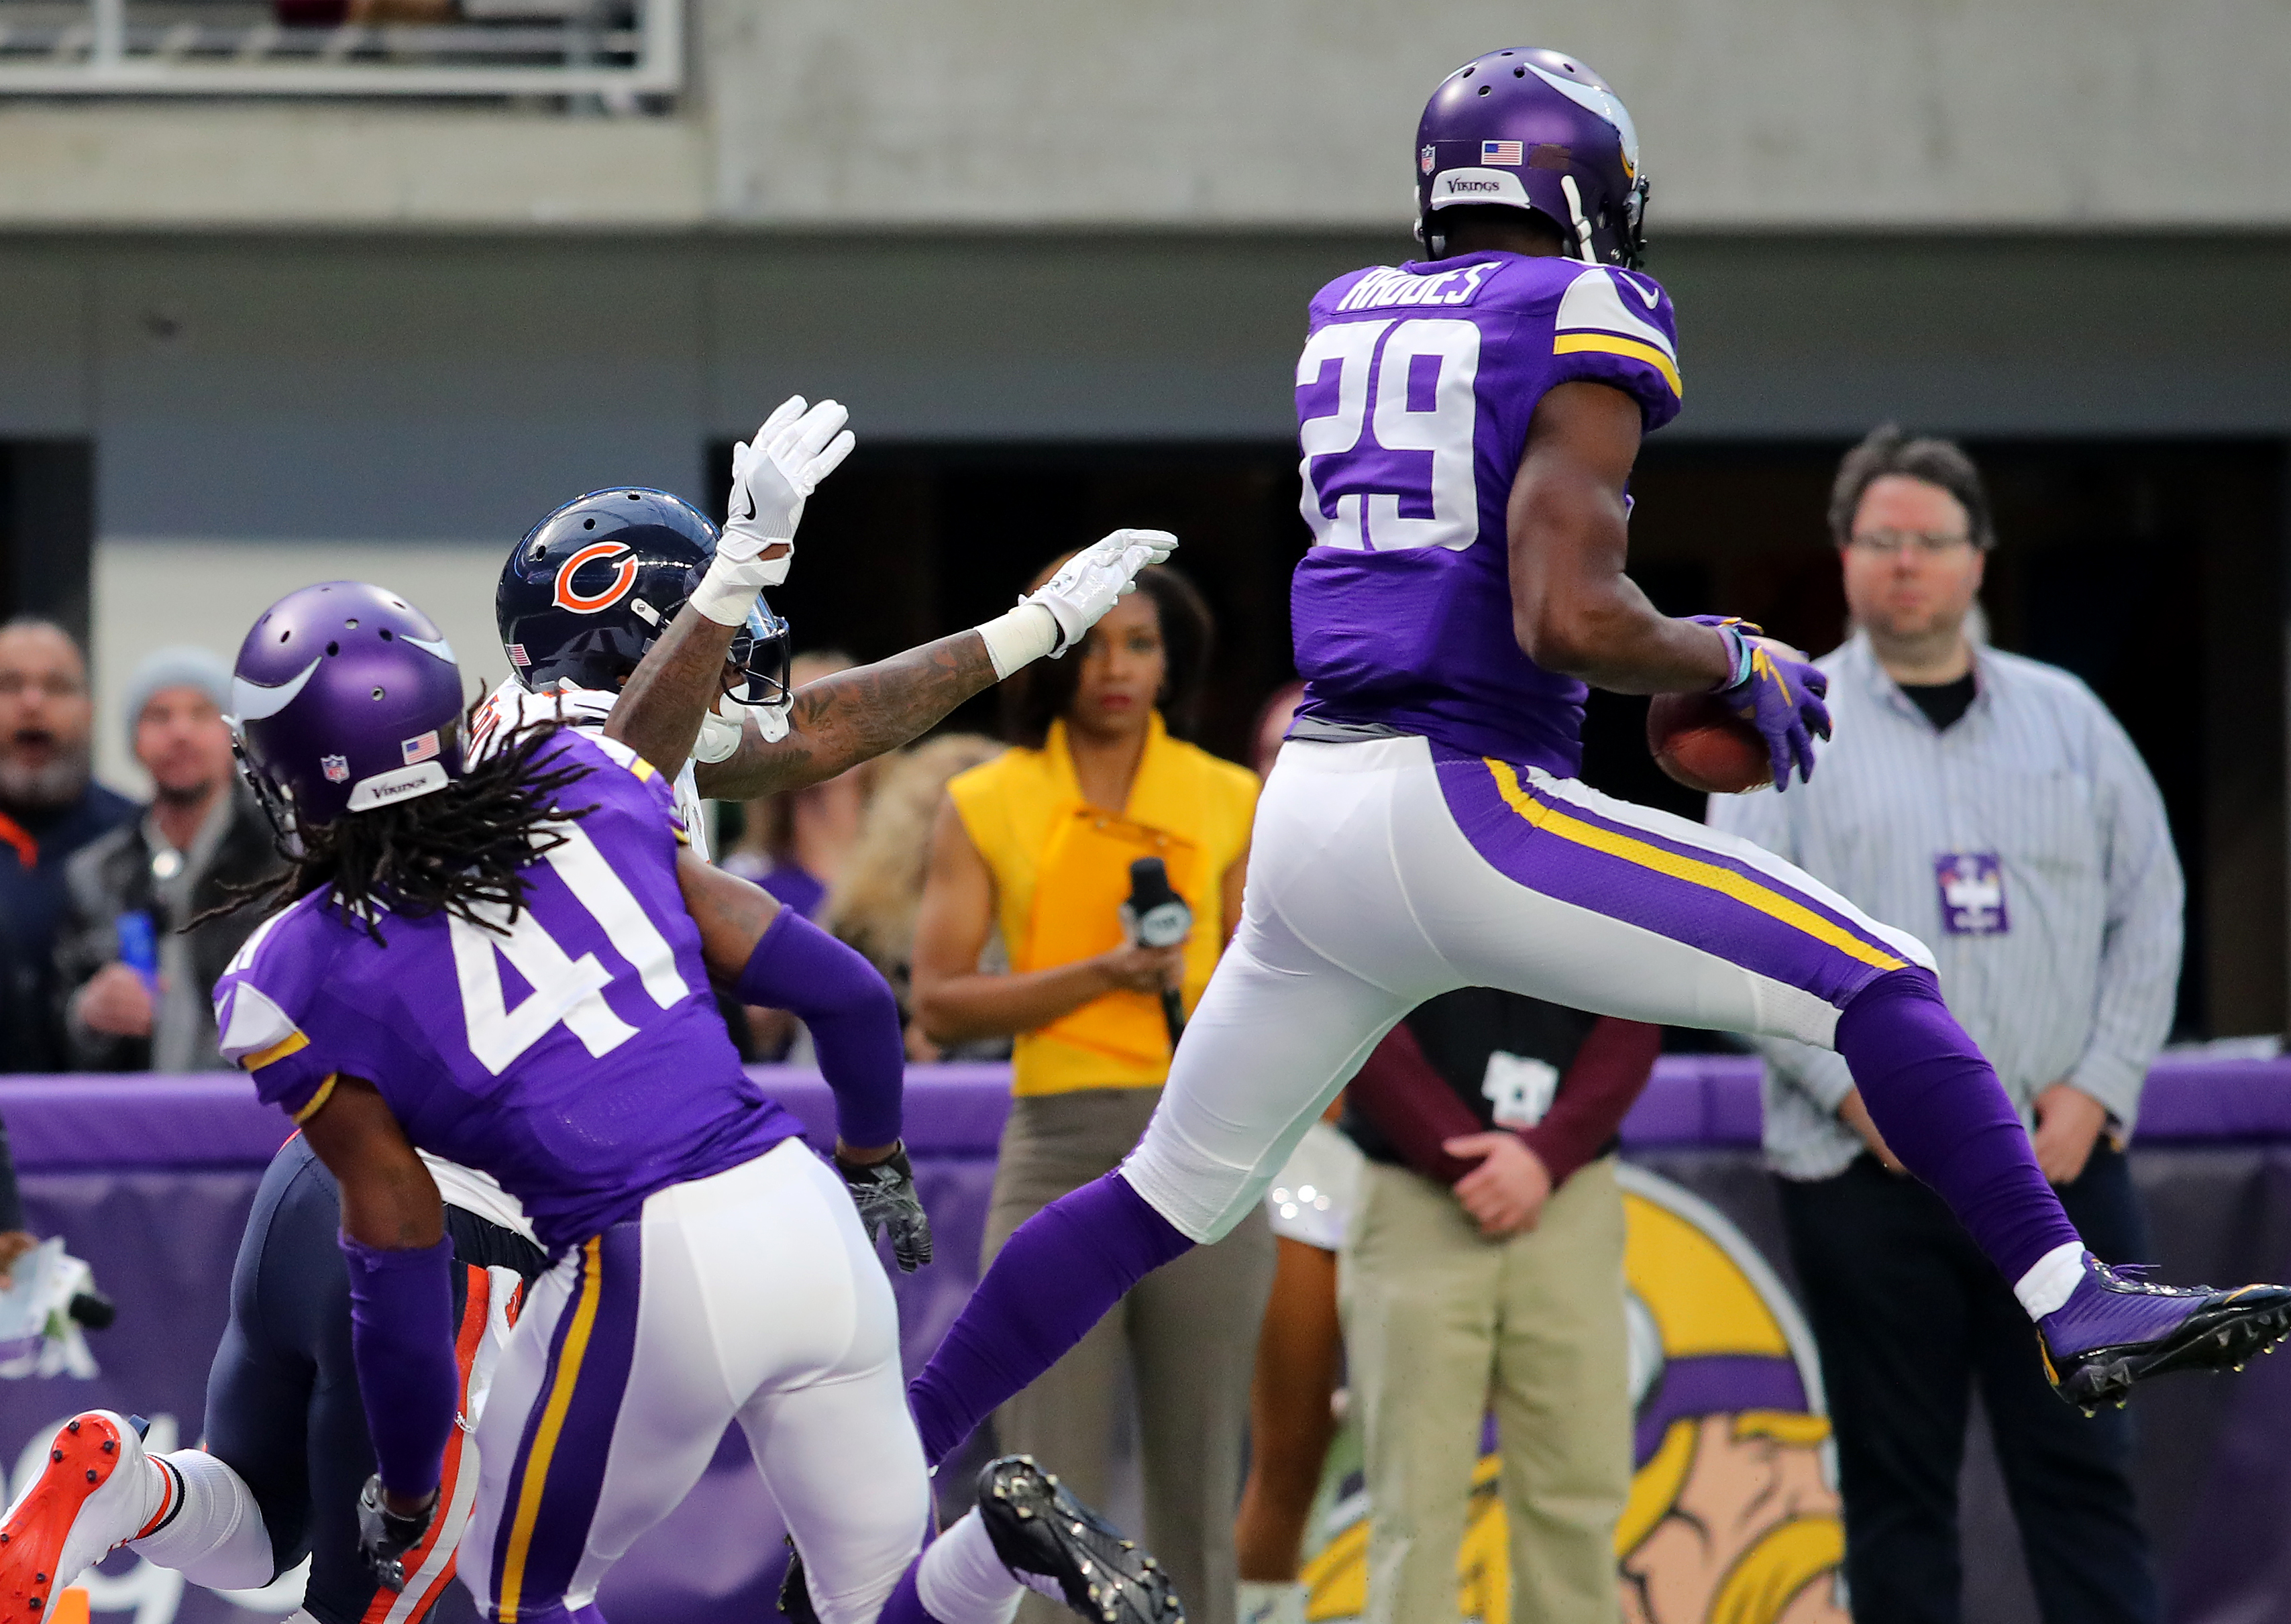 Xavier Rhodes projected to be an NFL All Pro in 2017